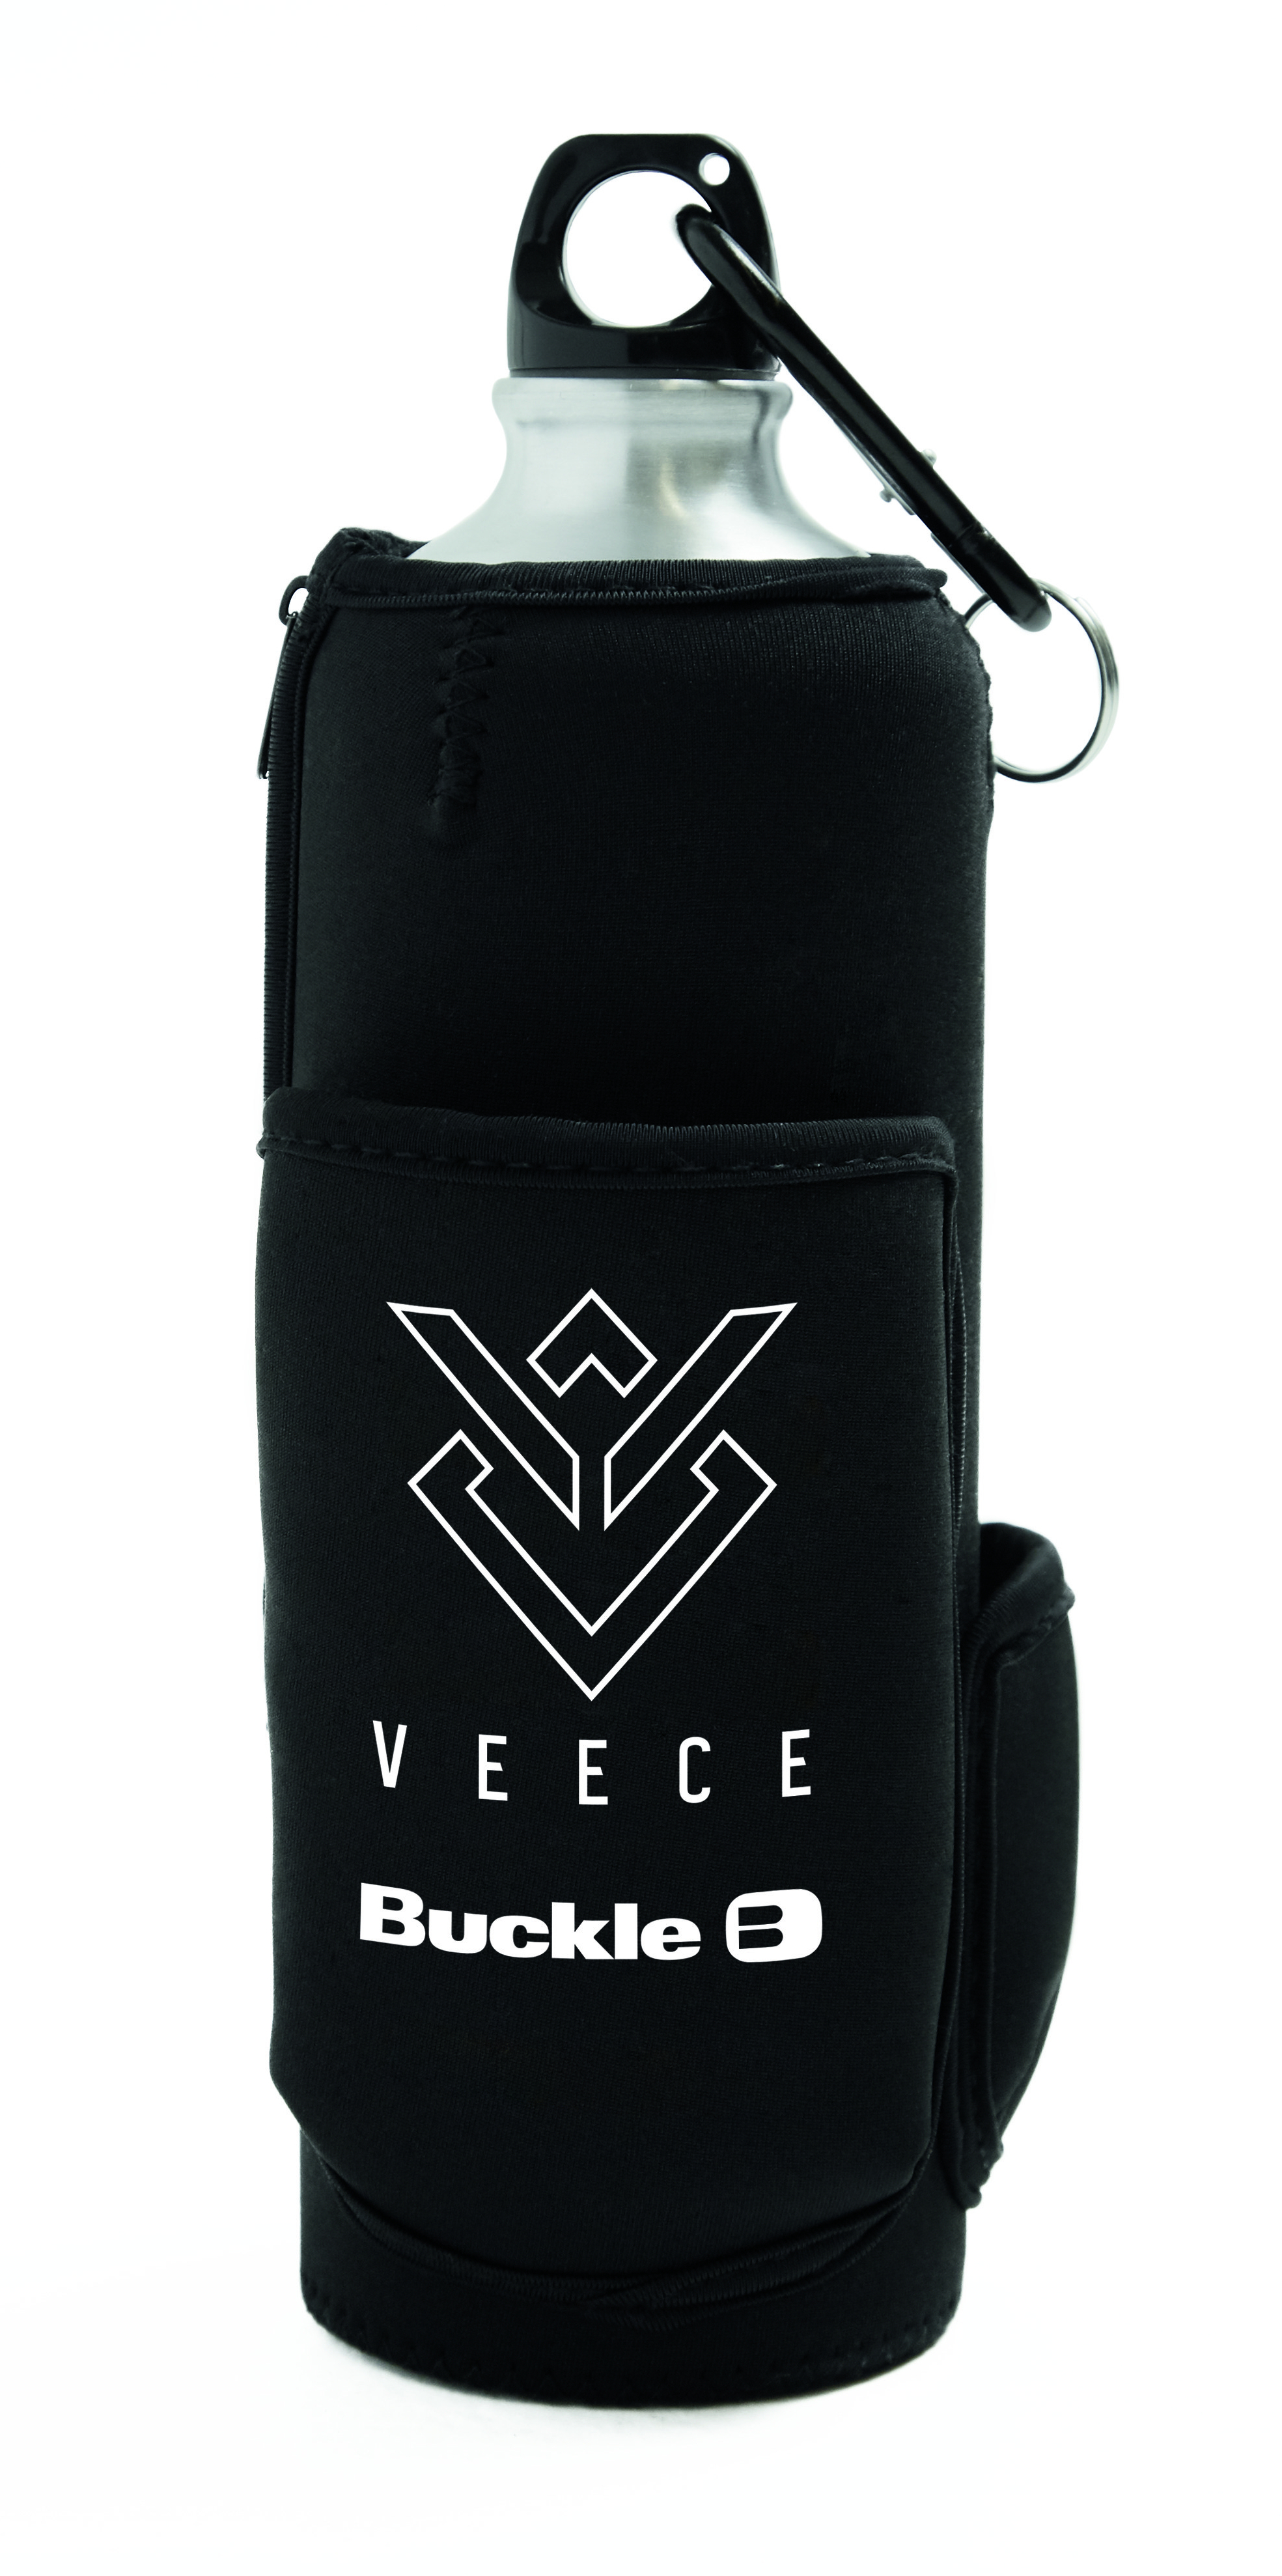 Buckle Brand Event - Veece Water Bottle